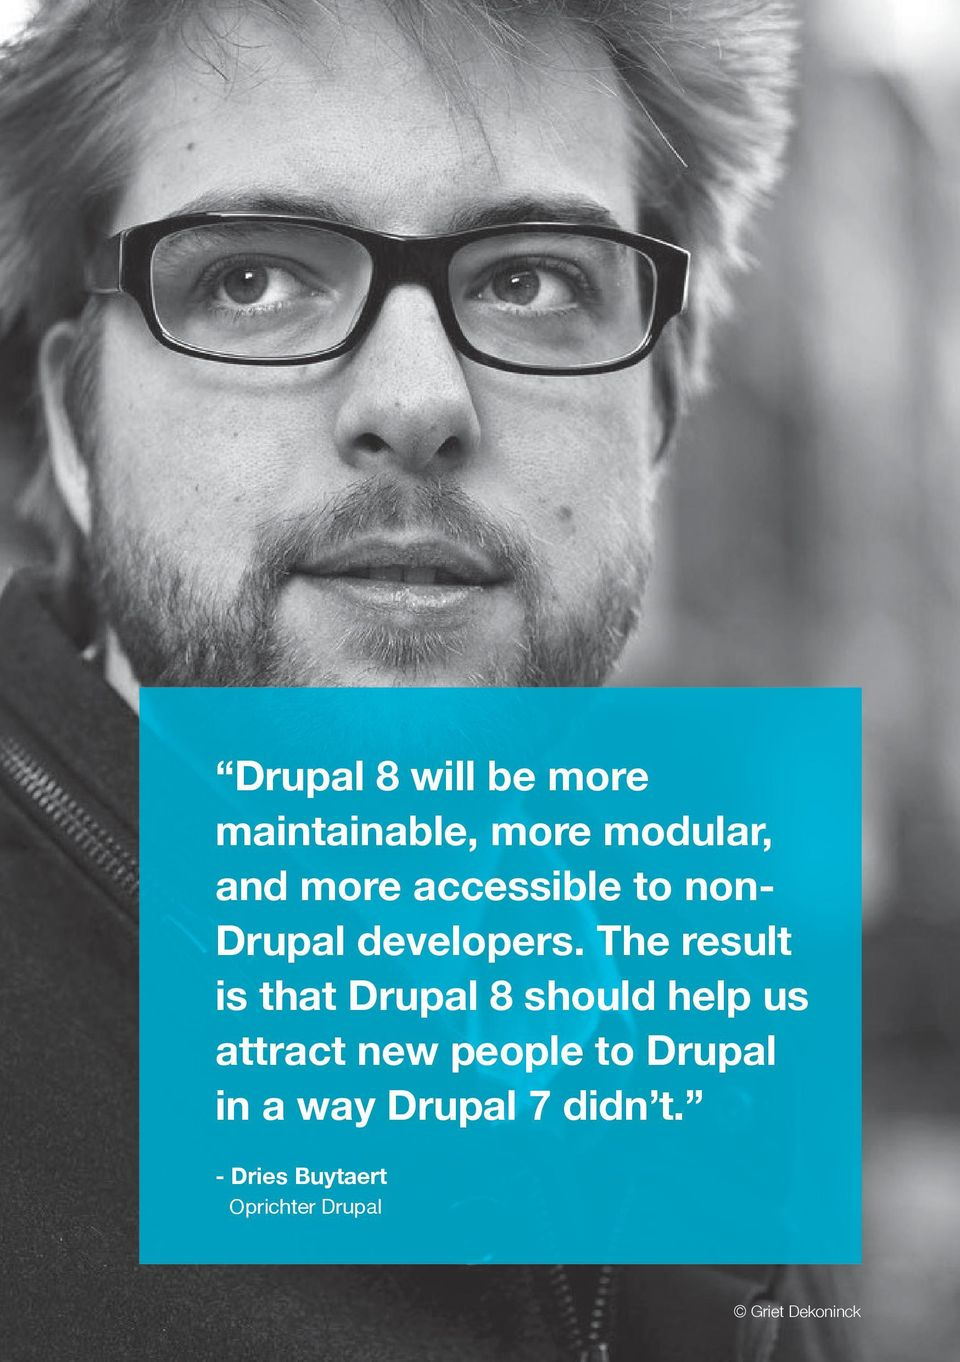 The result is that Drupal 8 should help us attract new